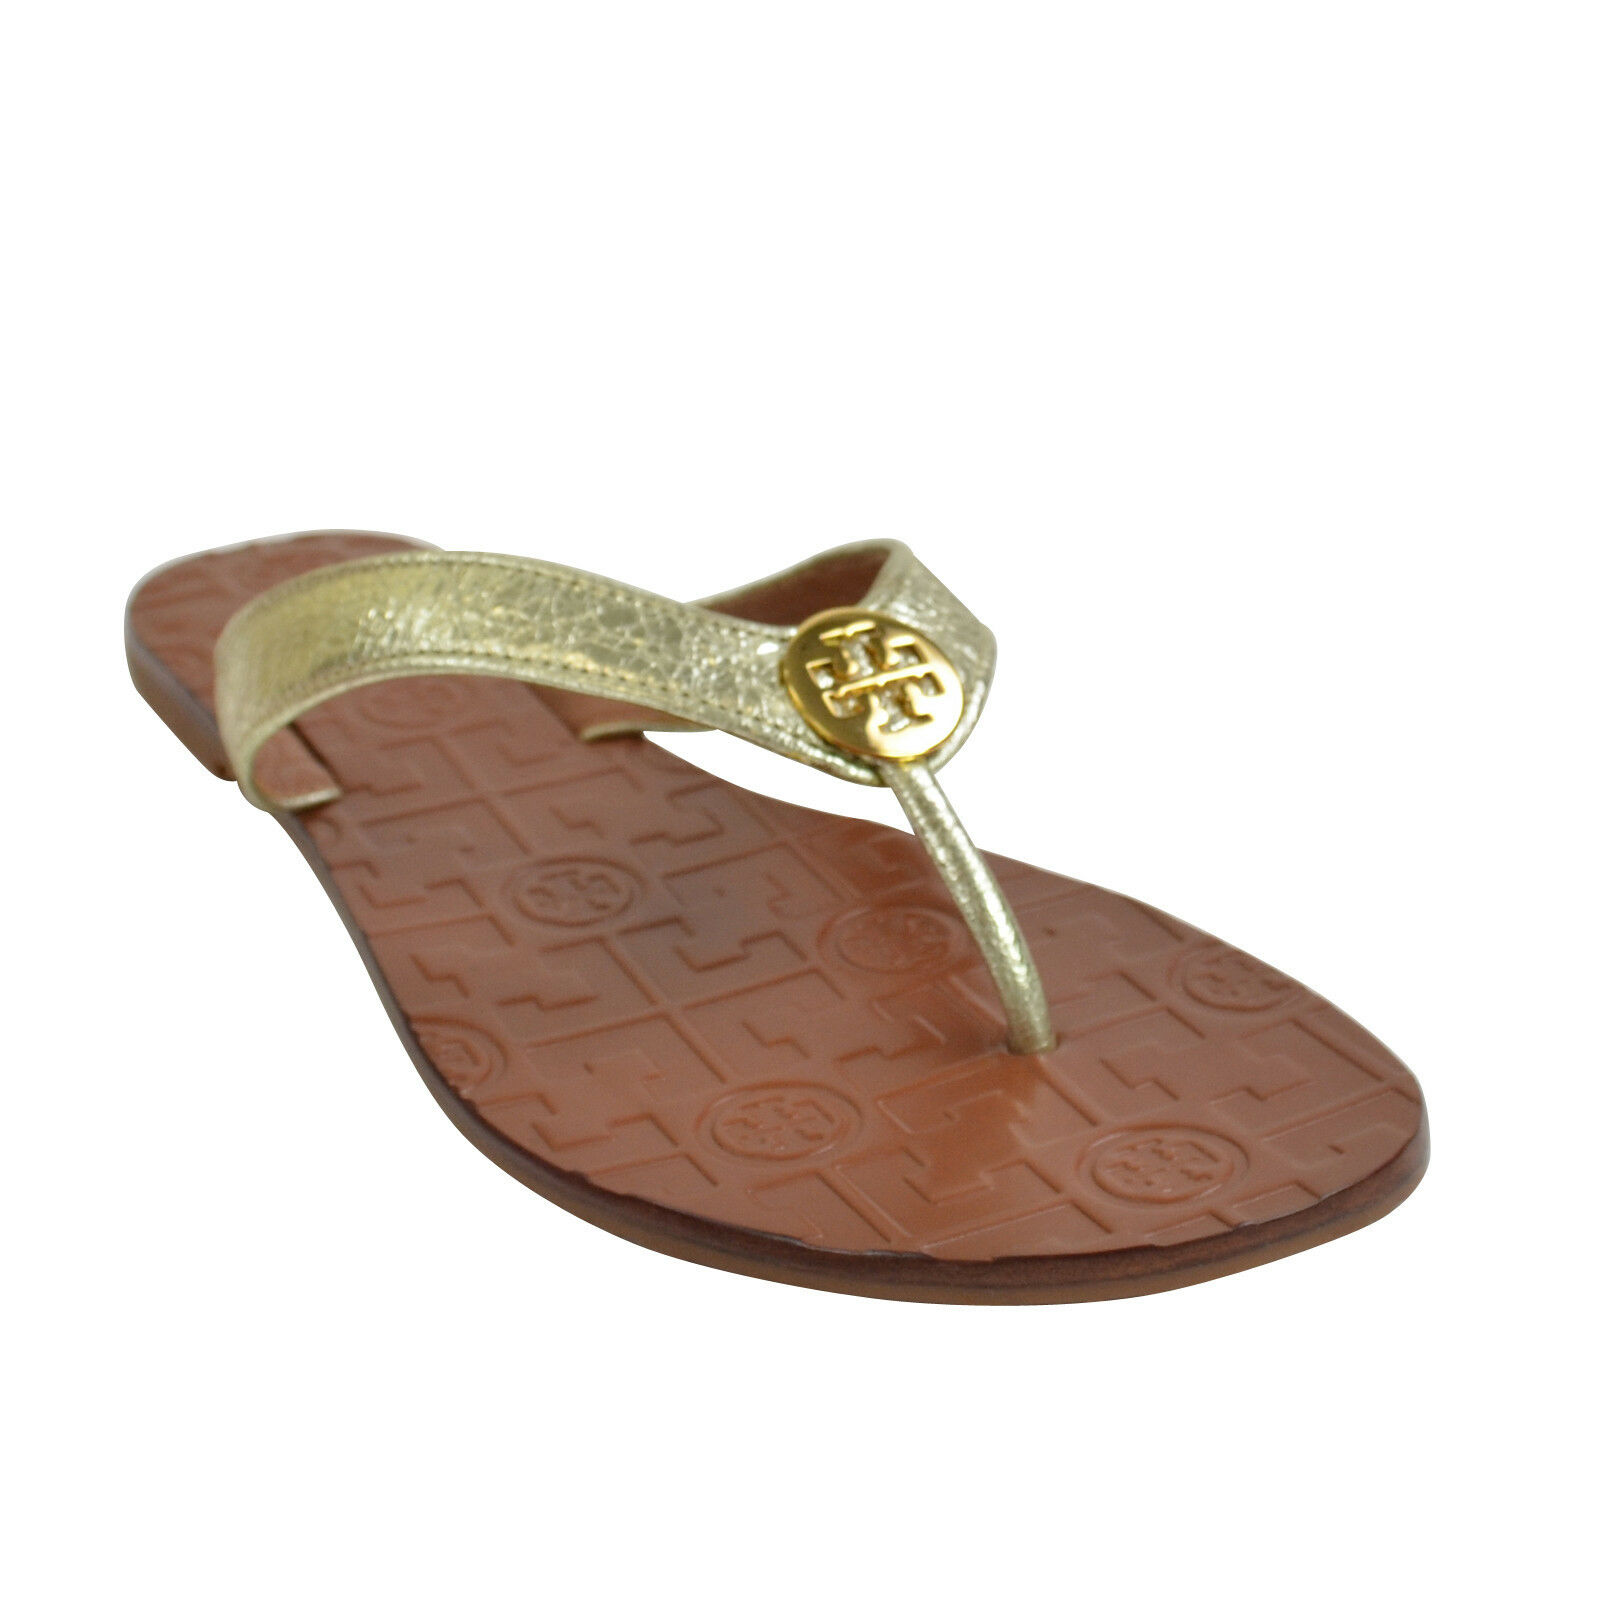 c394d4bc674 NIB Tory Burch THORA Gold Metallic Leather Thong Sandals Pick Your Size!